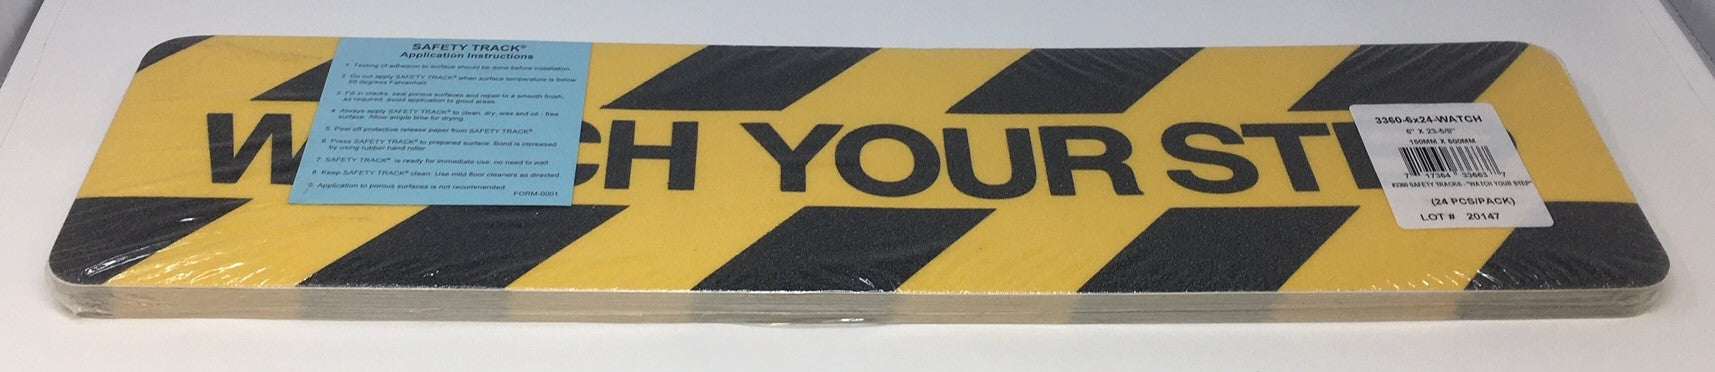 "6"" X 24"" Watch Your Step Anti Slip Treads  - Pkg. of 24 - Up to 10 Day Processing"